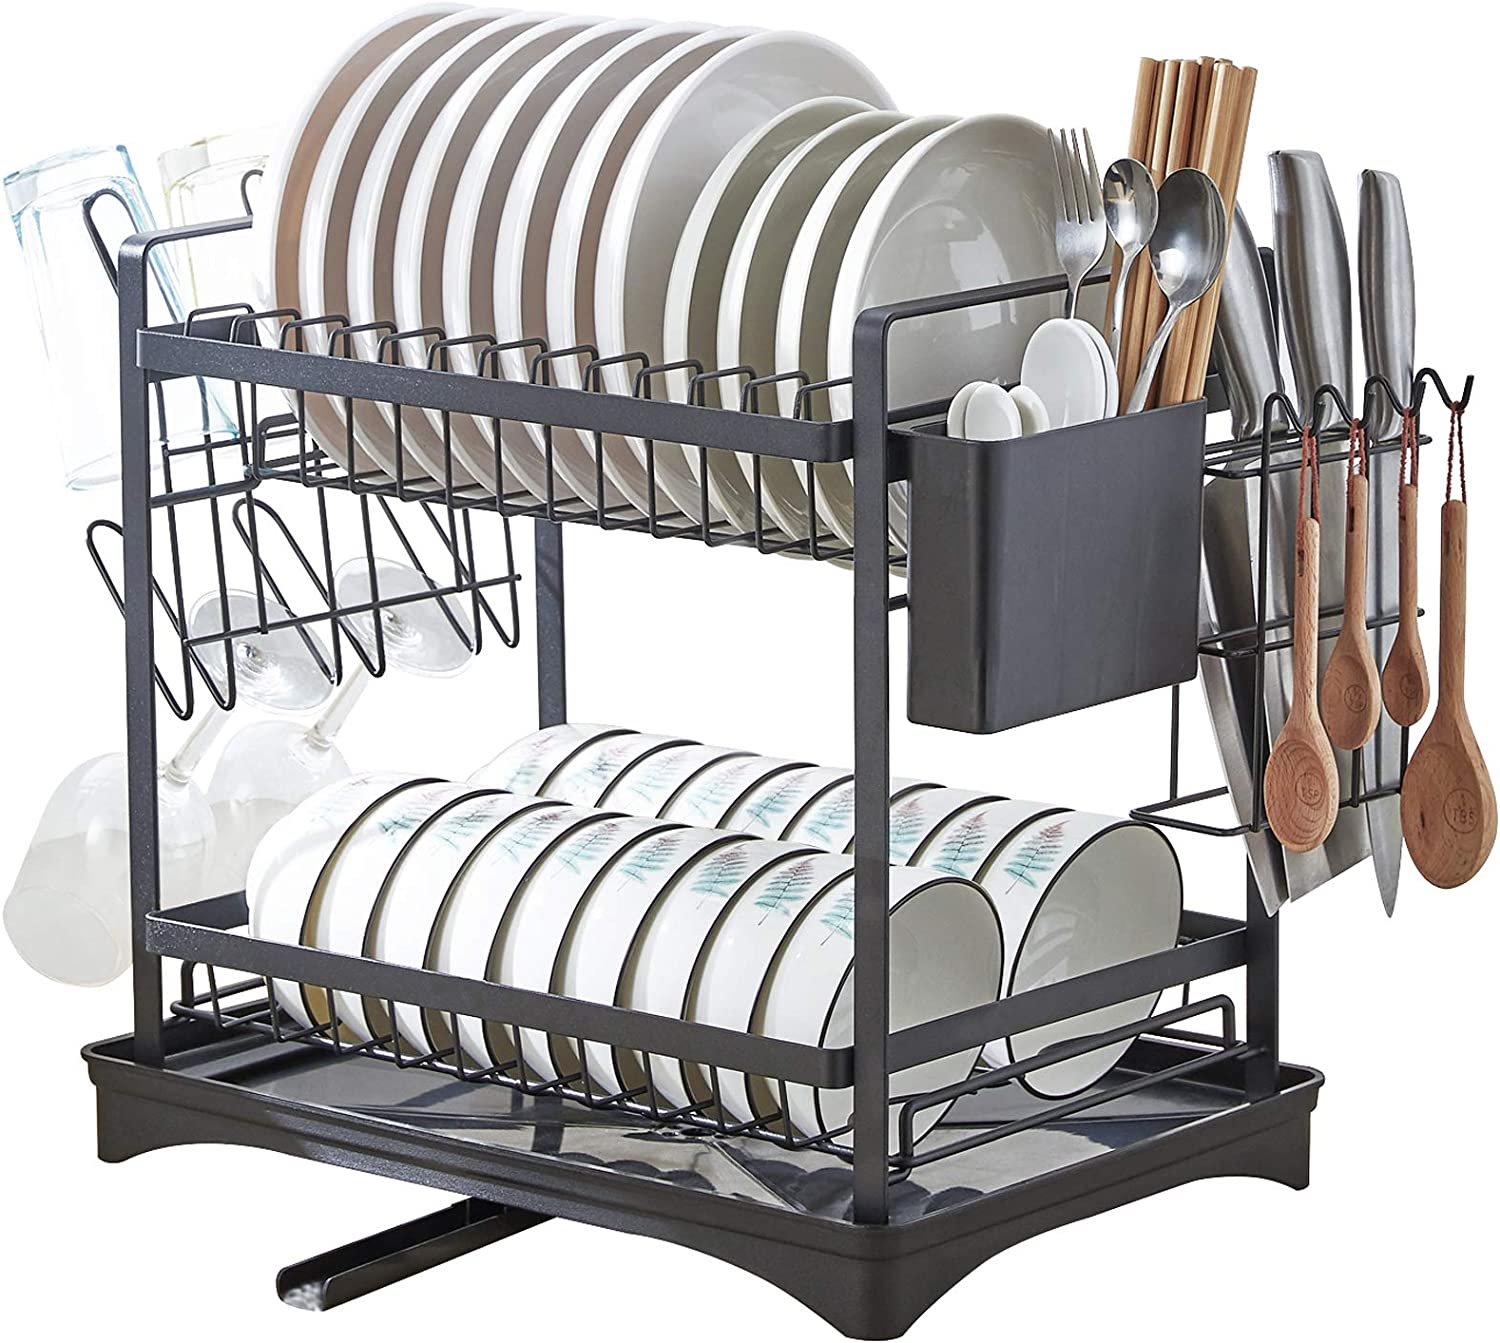 Dish Drying Rack for Kitchen 2 Counter Drainers San Antonio Mall Tier Indefinitely